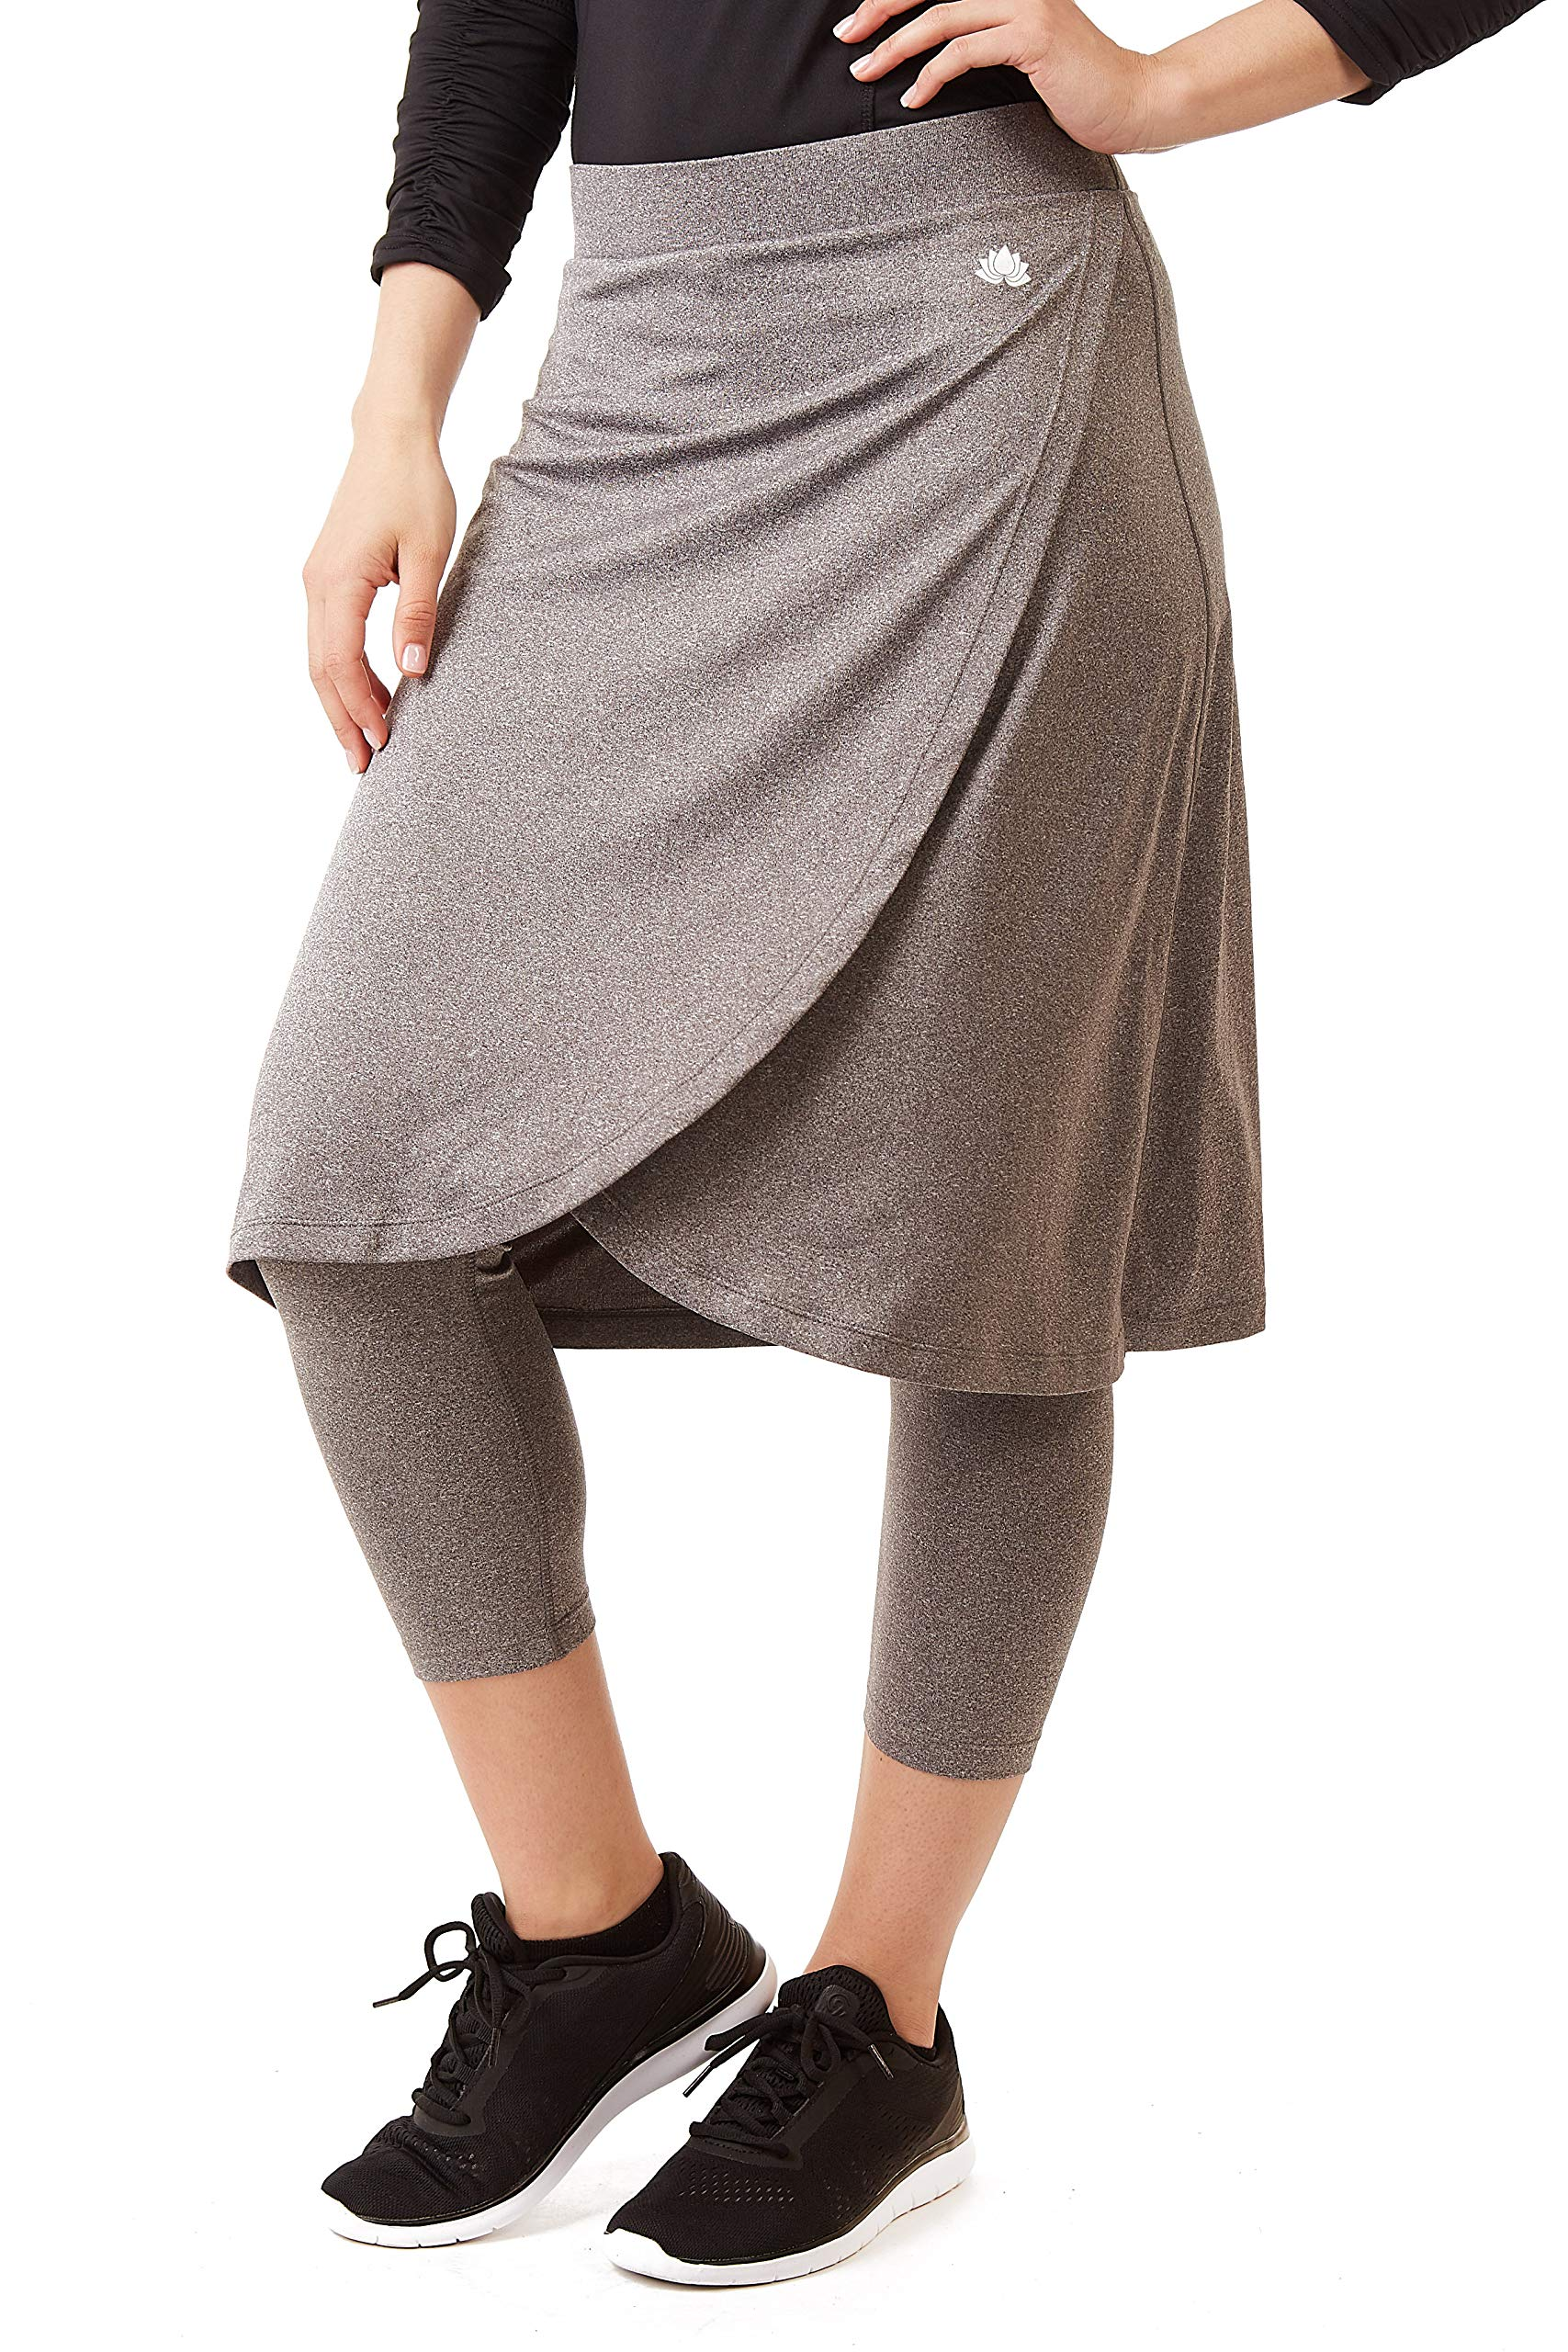 Snoga Modest Workout Faux Wrap 3/4 Length Leggings Attached - Heather Grey, X-Small by Snoga Athletics